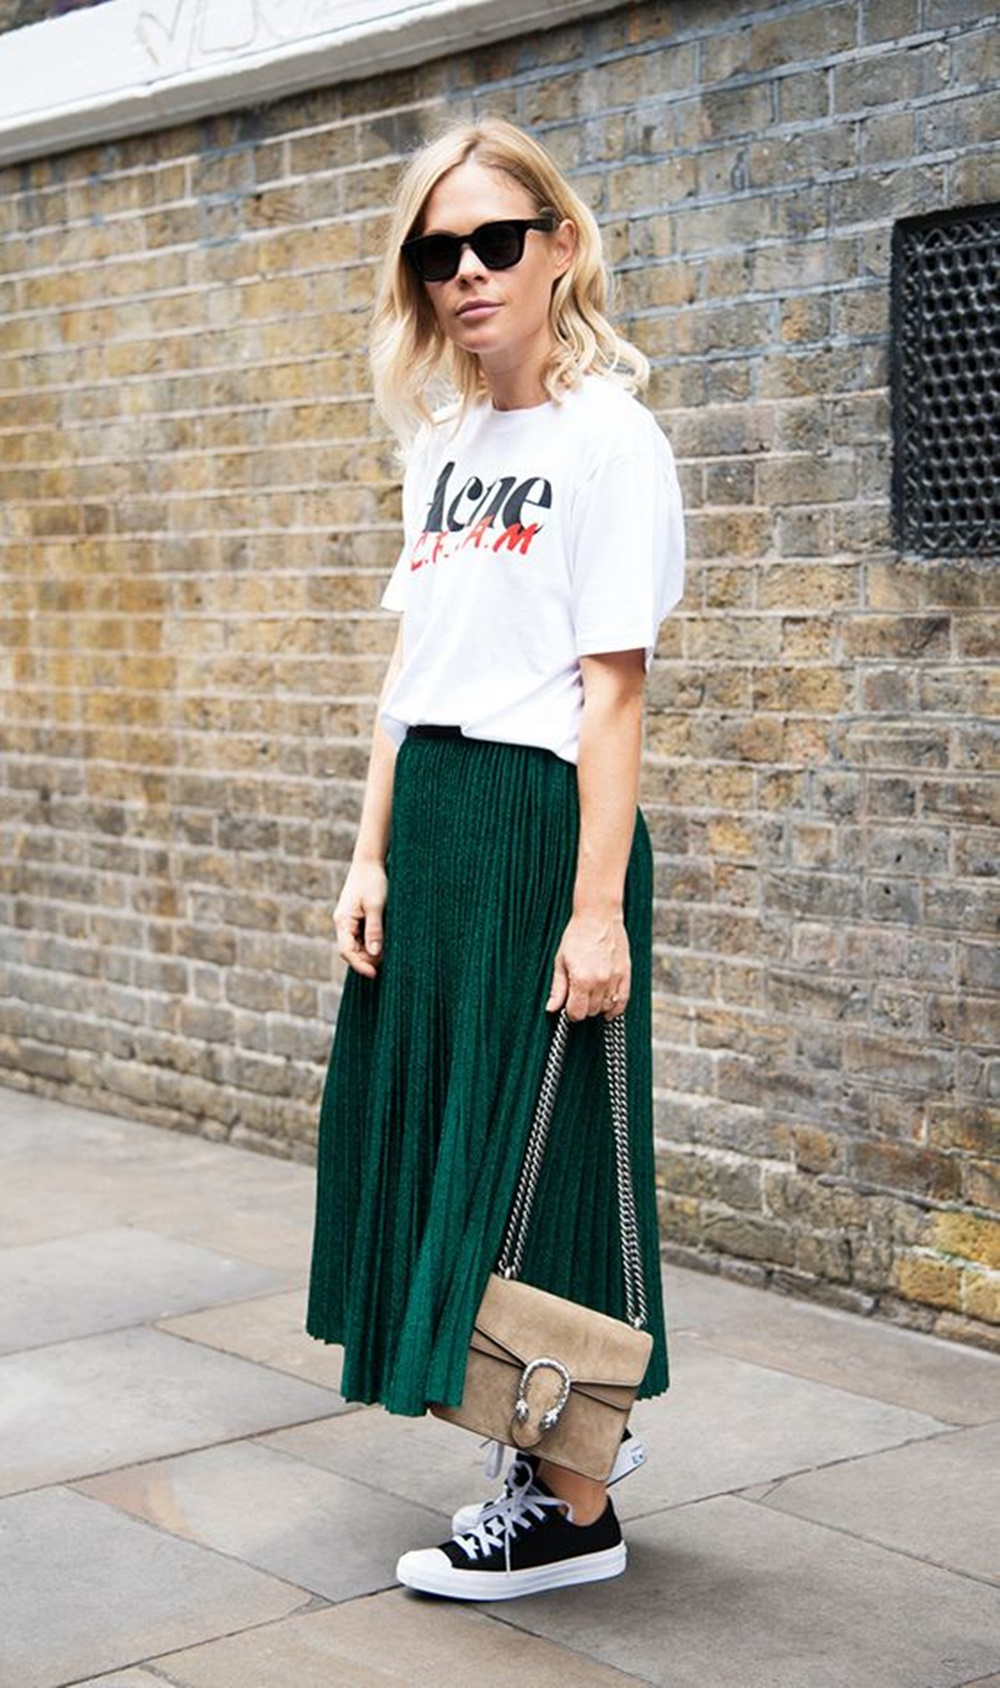 Skirt-and-T-shirt.-1 120+ Fashion Trends and Looks for College Students in 2021